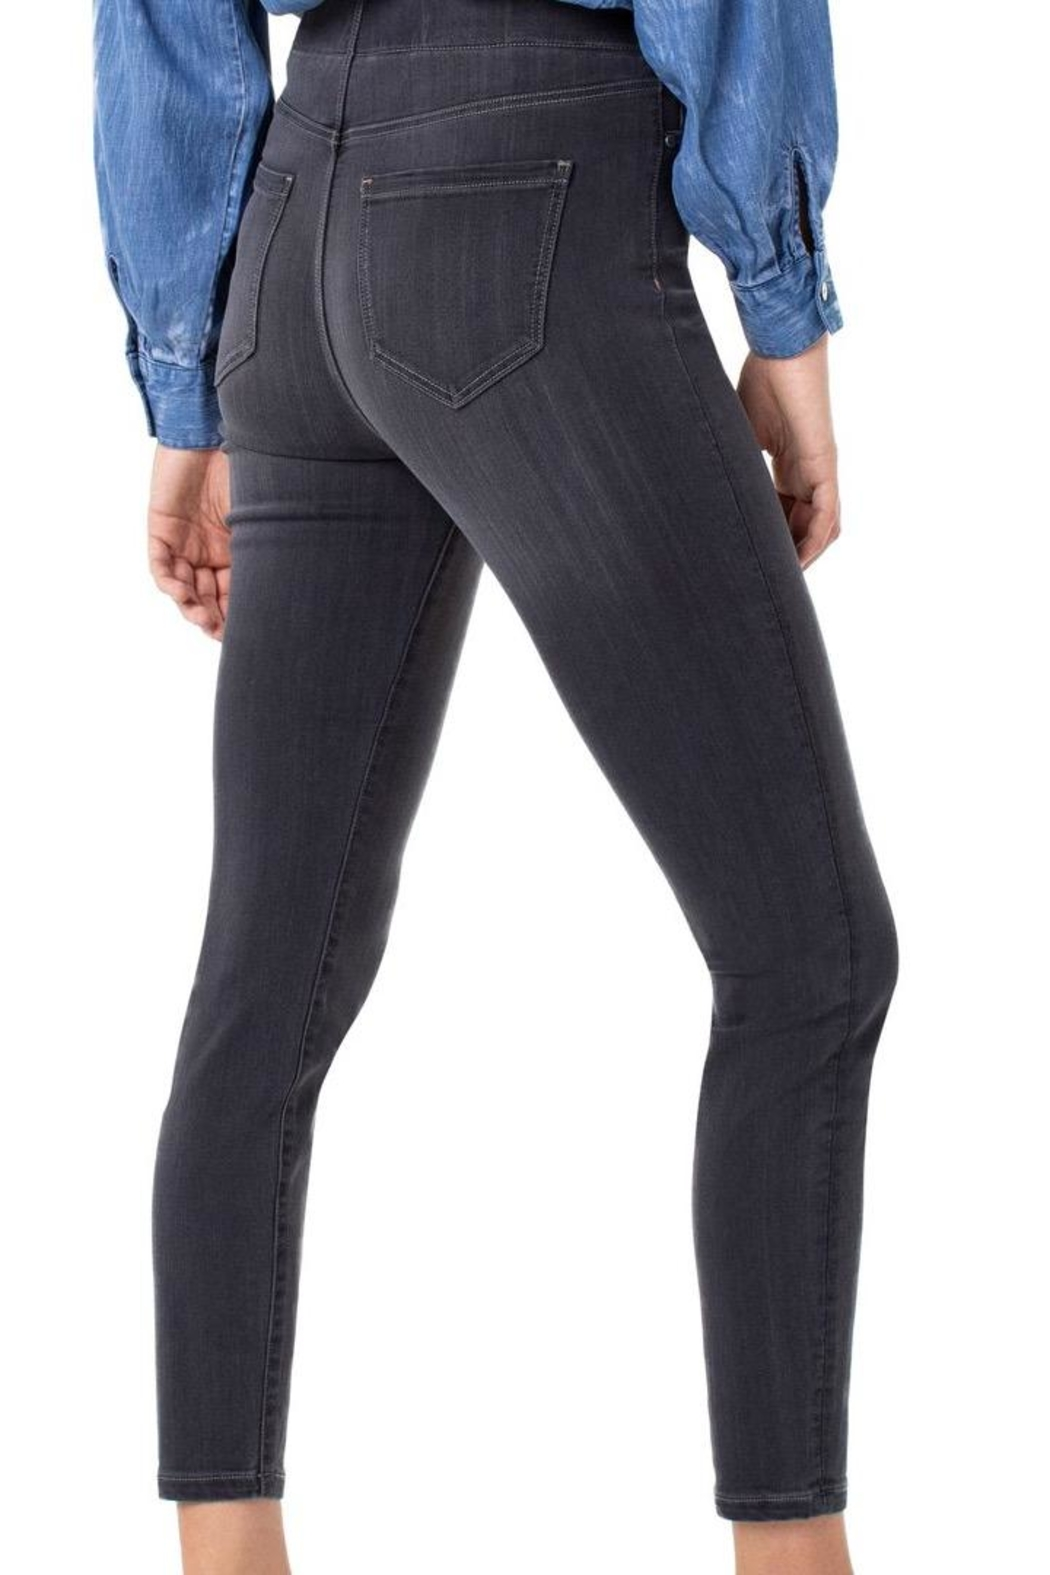 Liverpool Jean Company Skinny Grey Jeans - Front Full Image